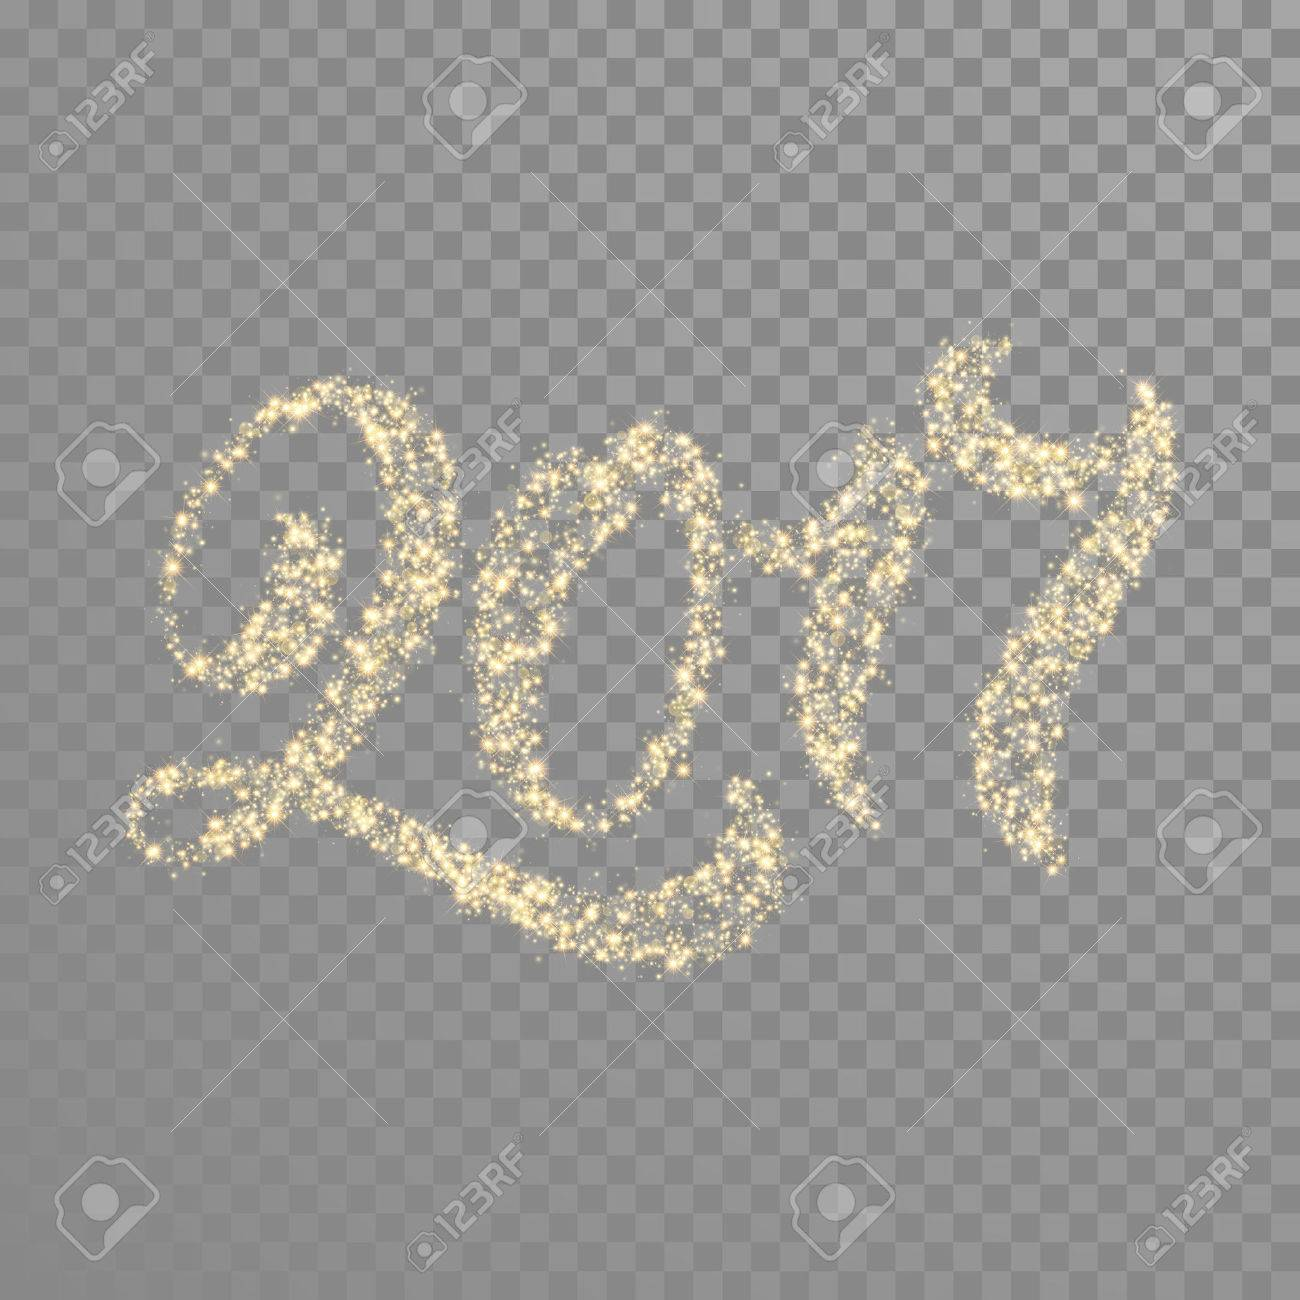 Gold glitter calligraphy text lettering for New Year greeting